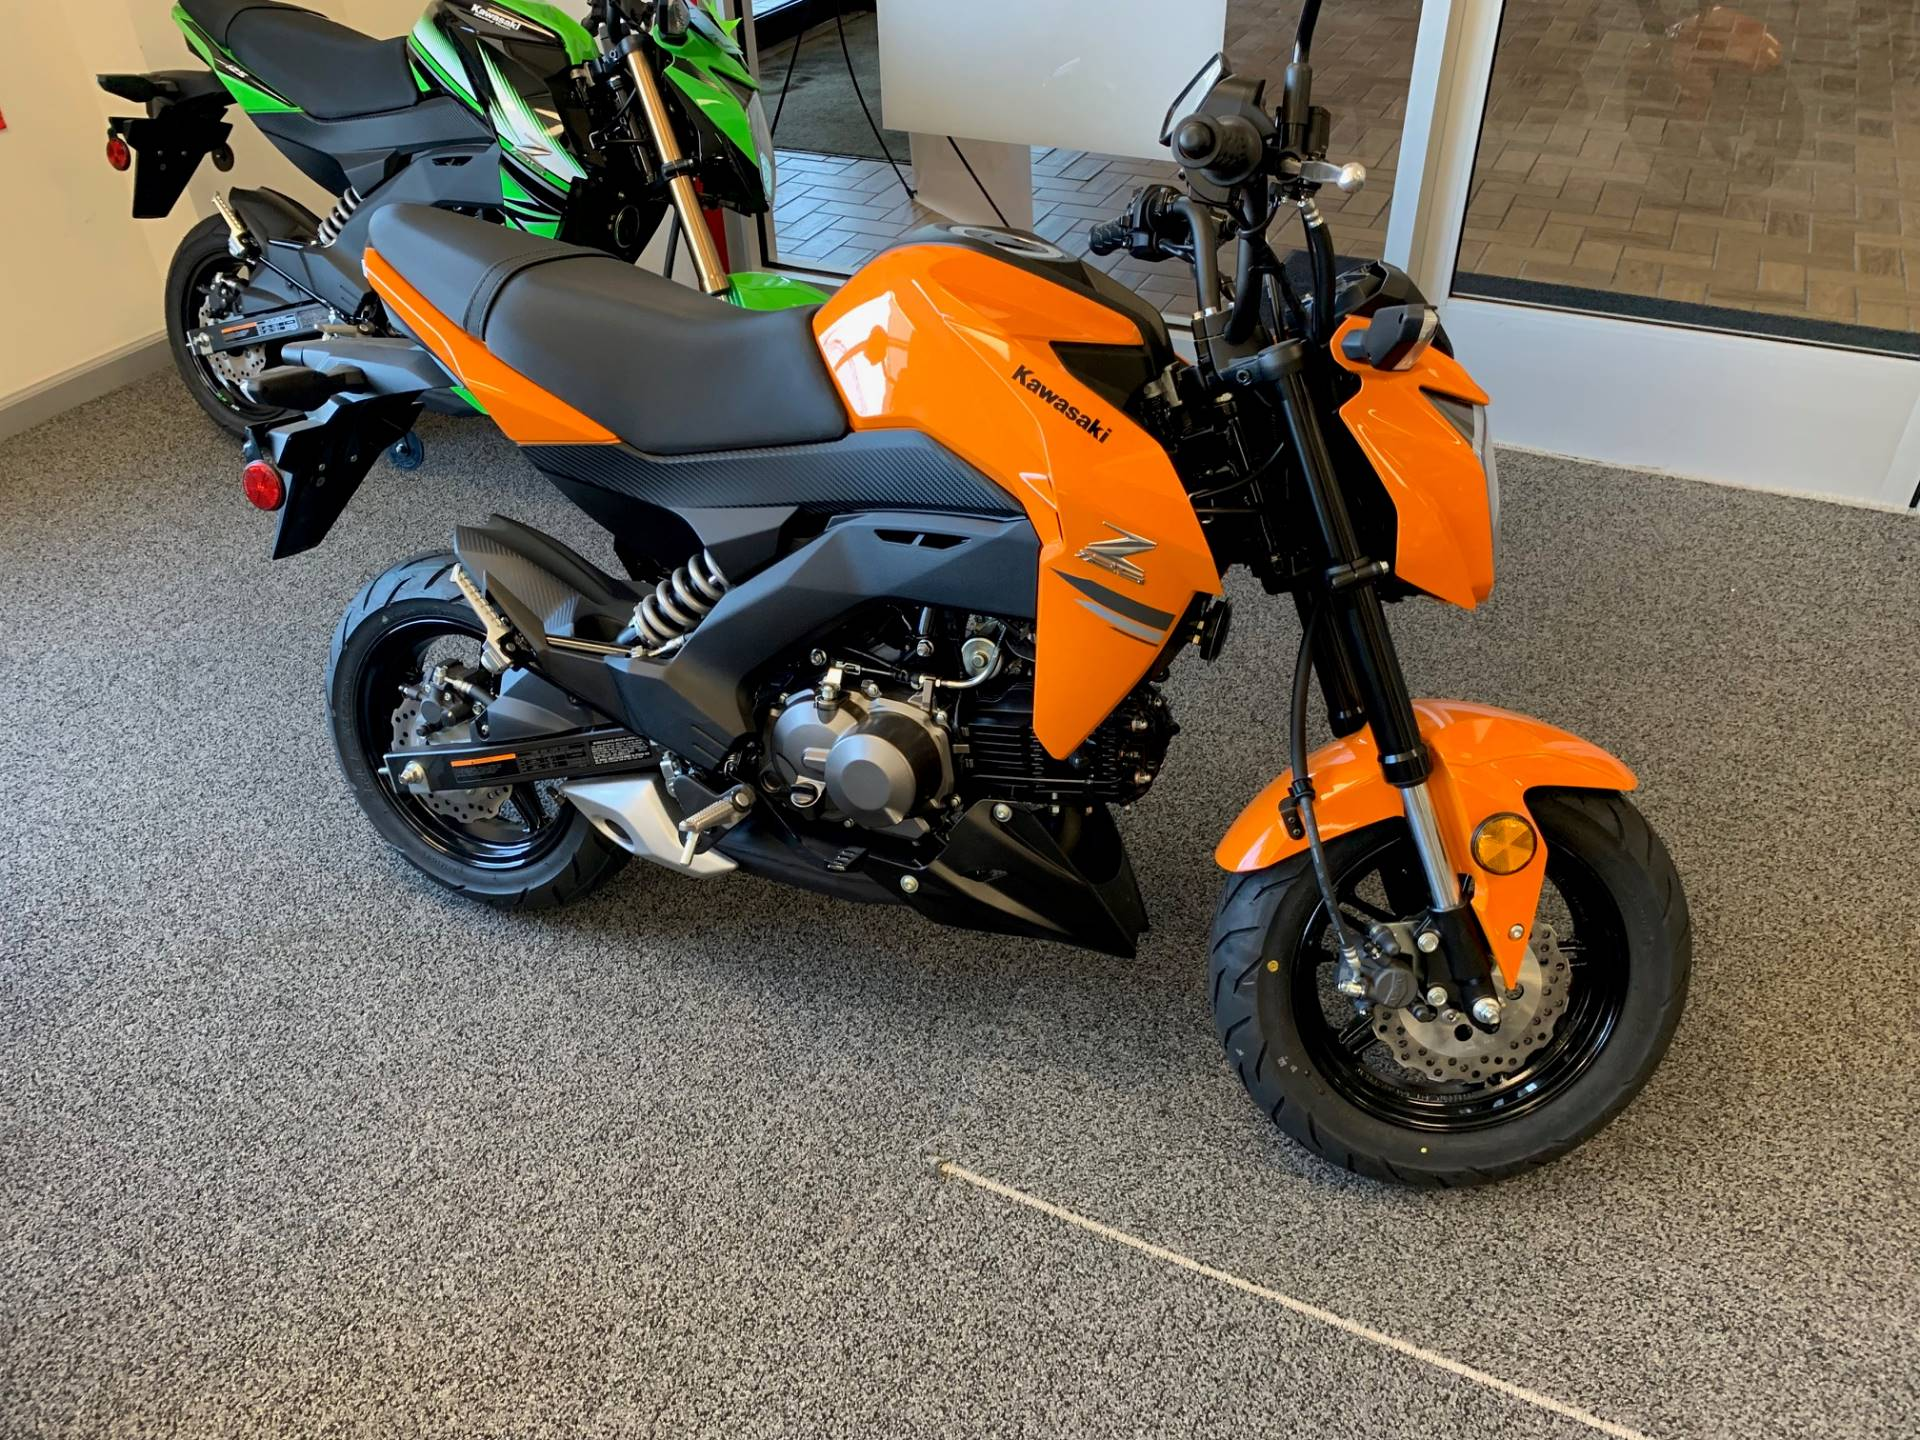 2019 Kawasaki Z125 Pro for sale 10485